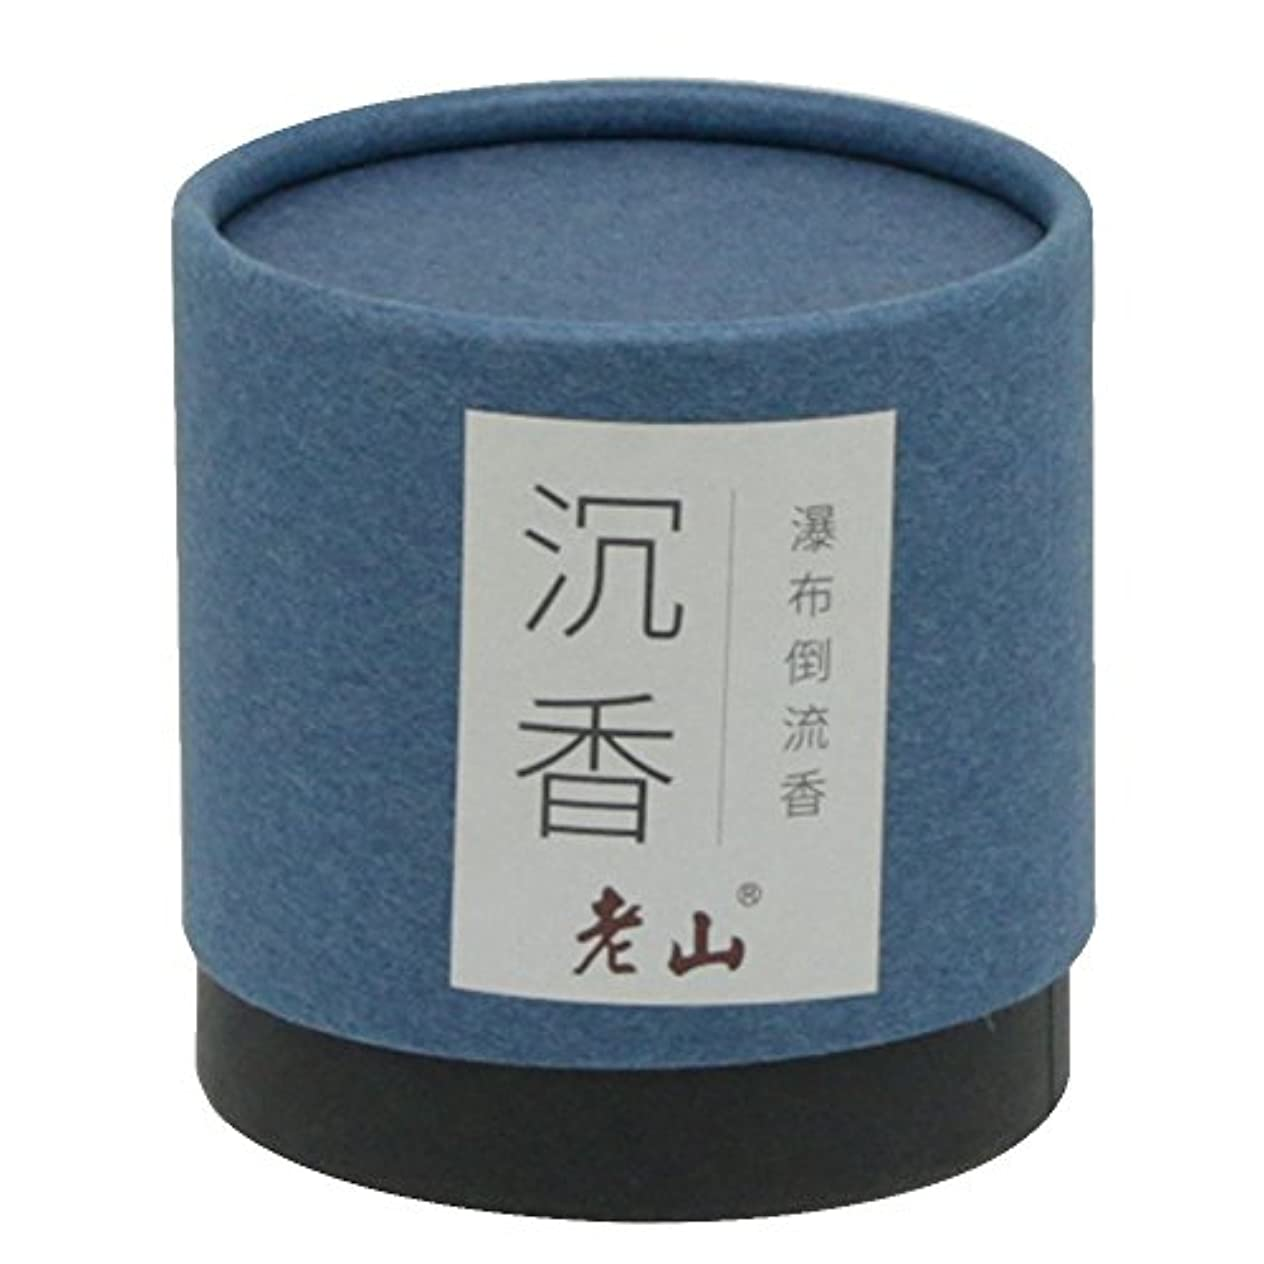 印刷する誘惑する解く逆流円錐incense-100g自然Agarwood Cone Incense Waterfall Incense Backflow Incense